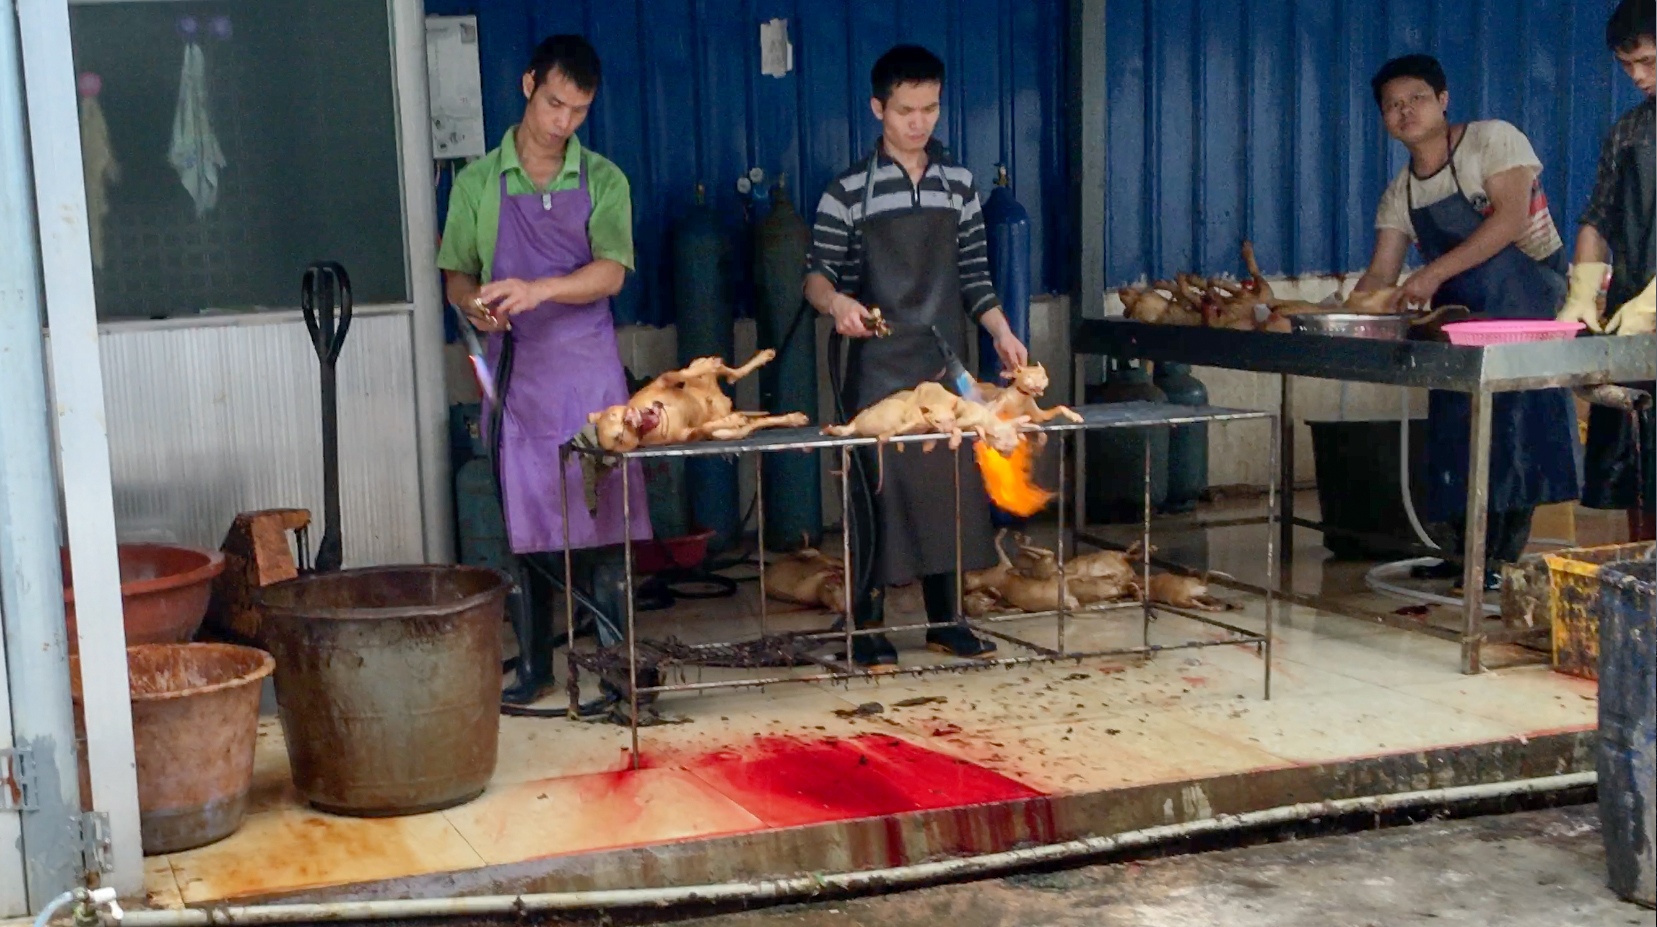 As people roast the bodies of dogs and cats, blood flows right underneath the table.